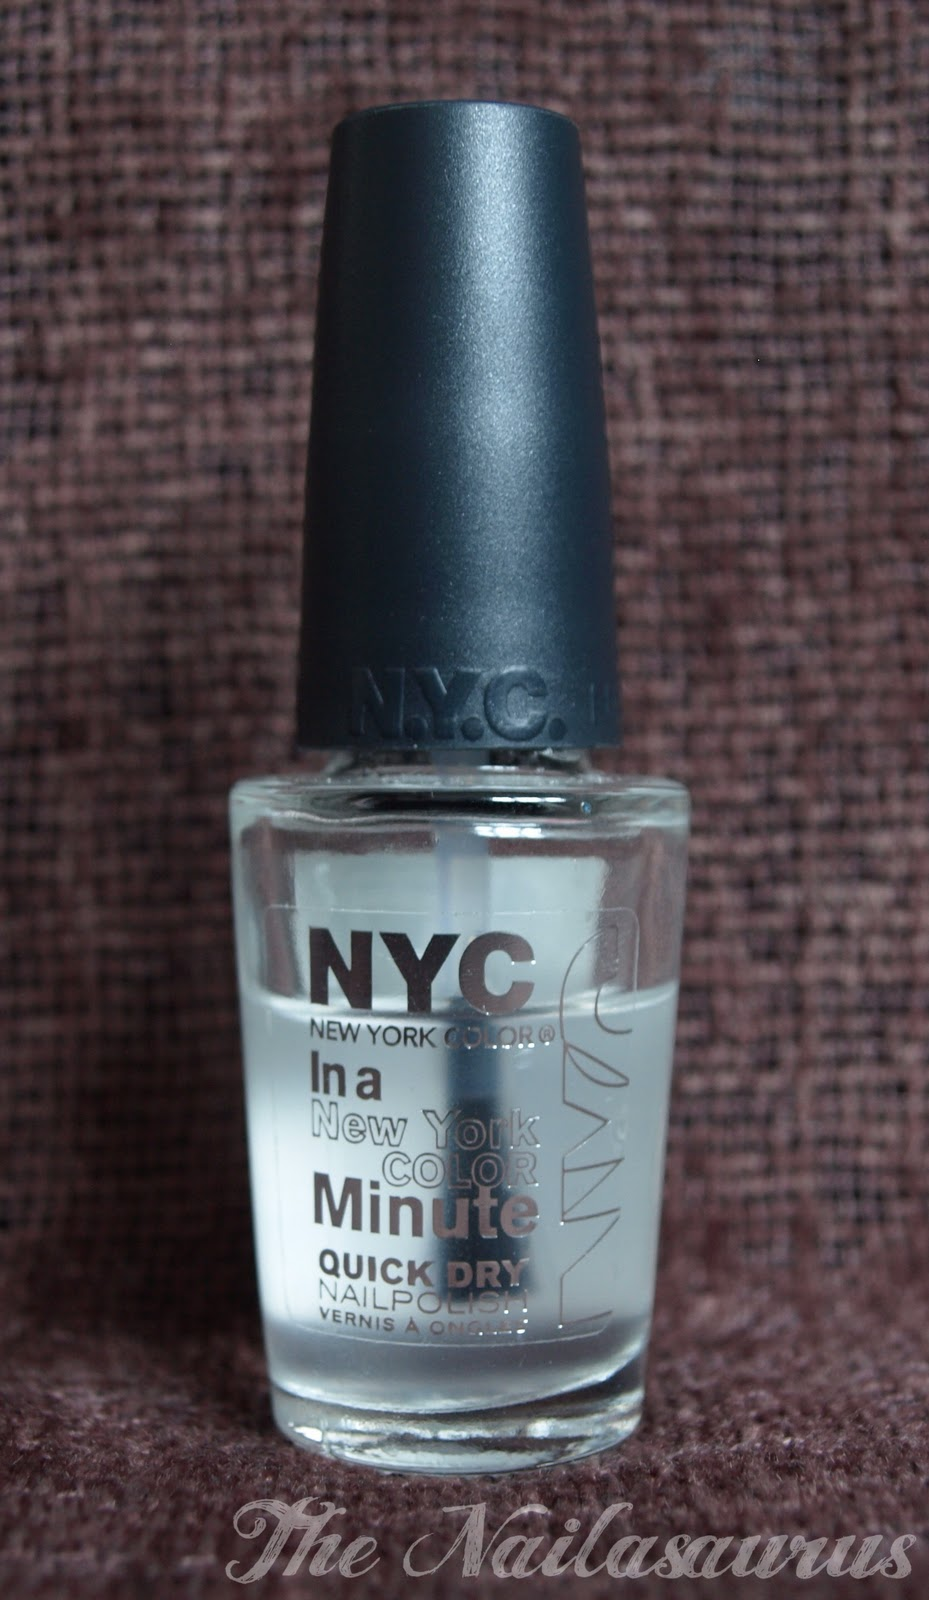 NYC In a New York Color Minute Quick Dry Polish Review - The ...